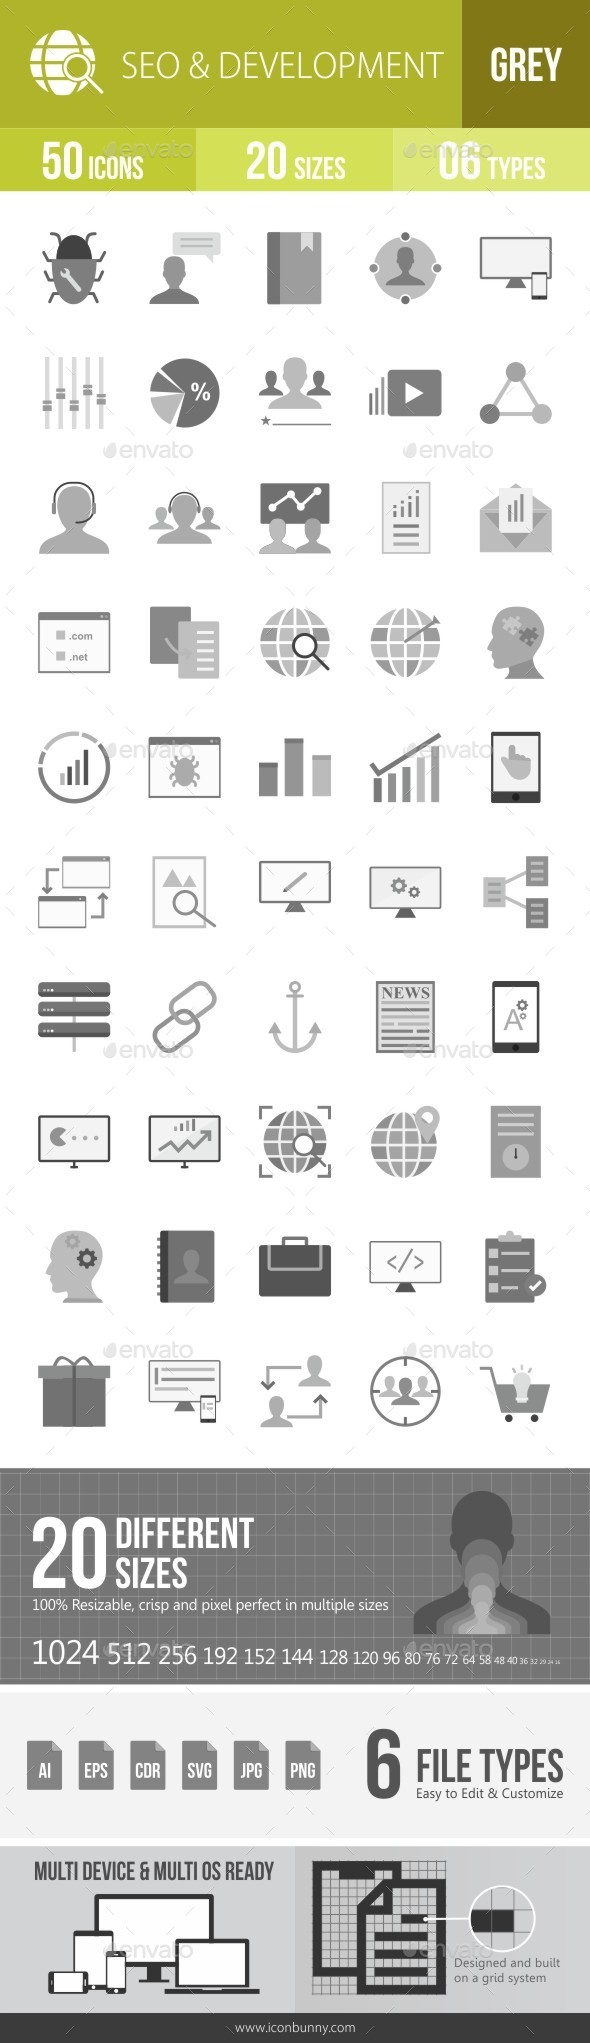 SEO & Development Services Greyscale Icons - Icons